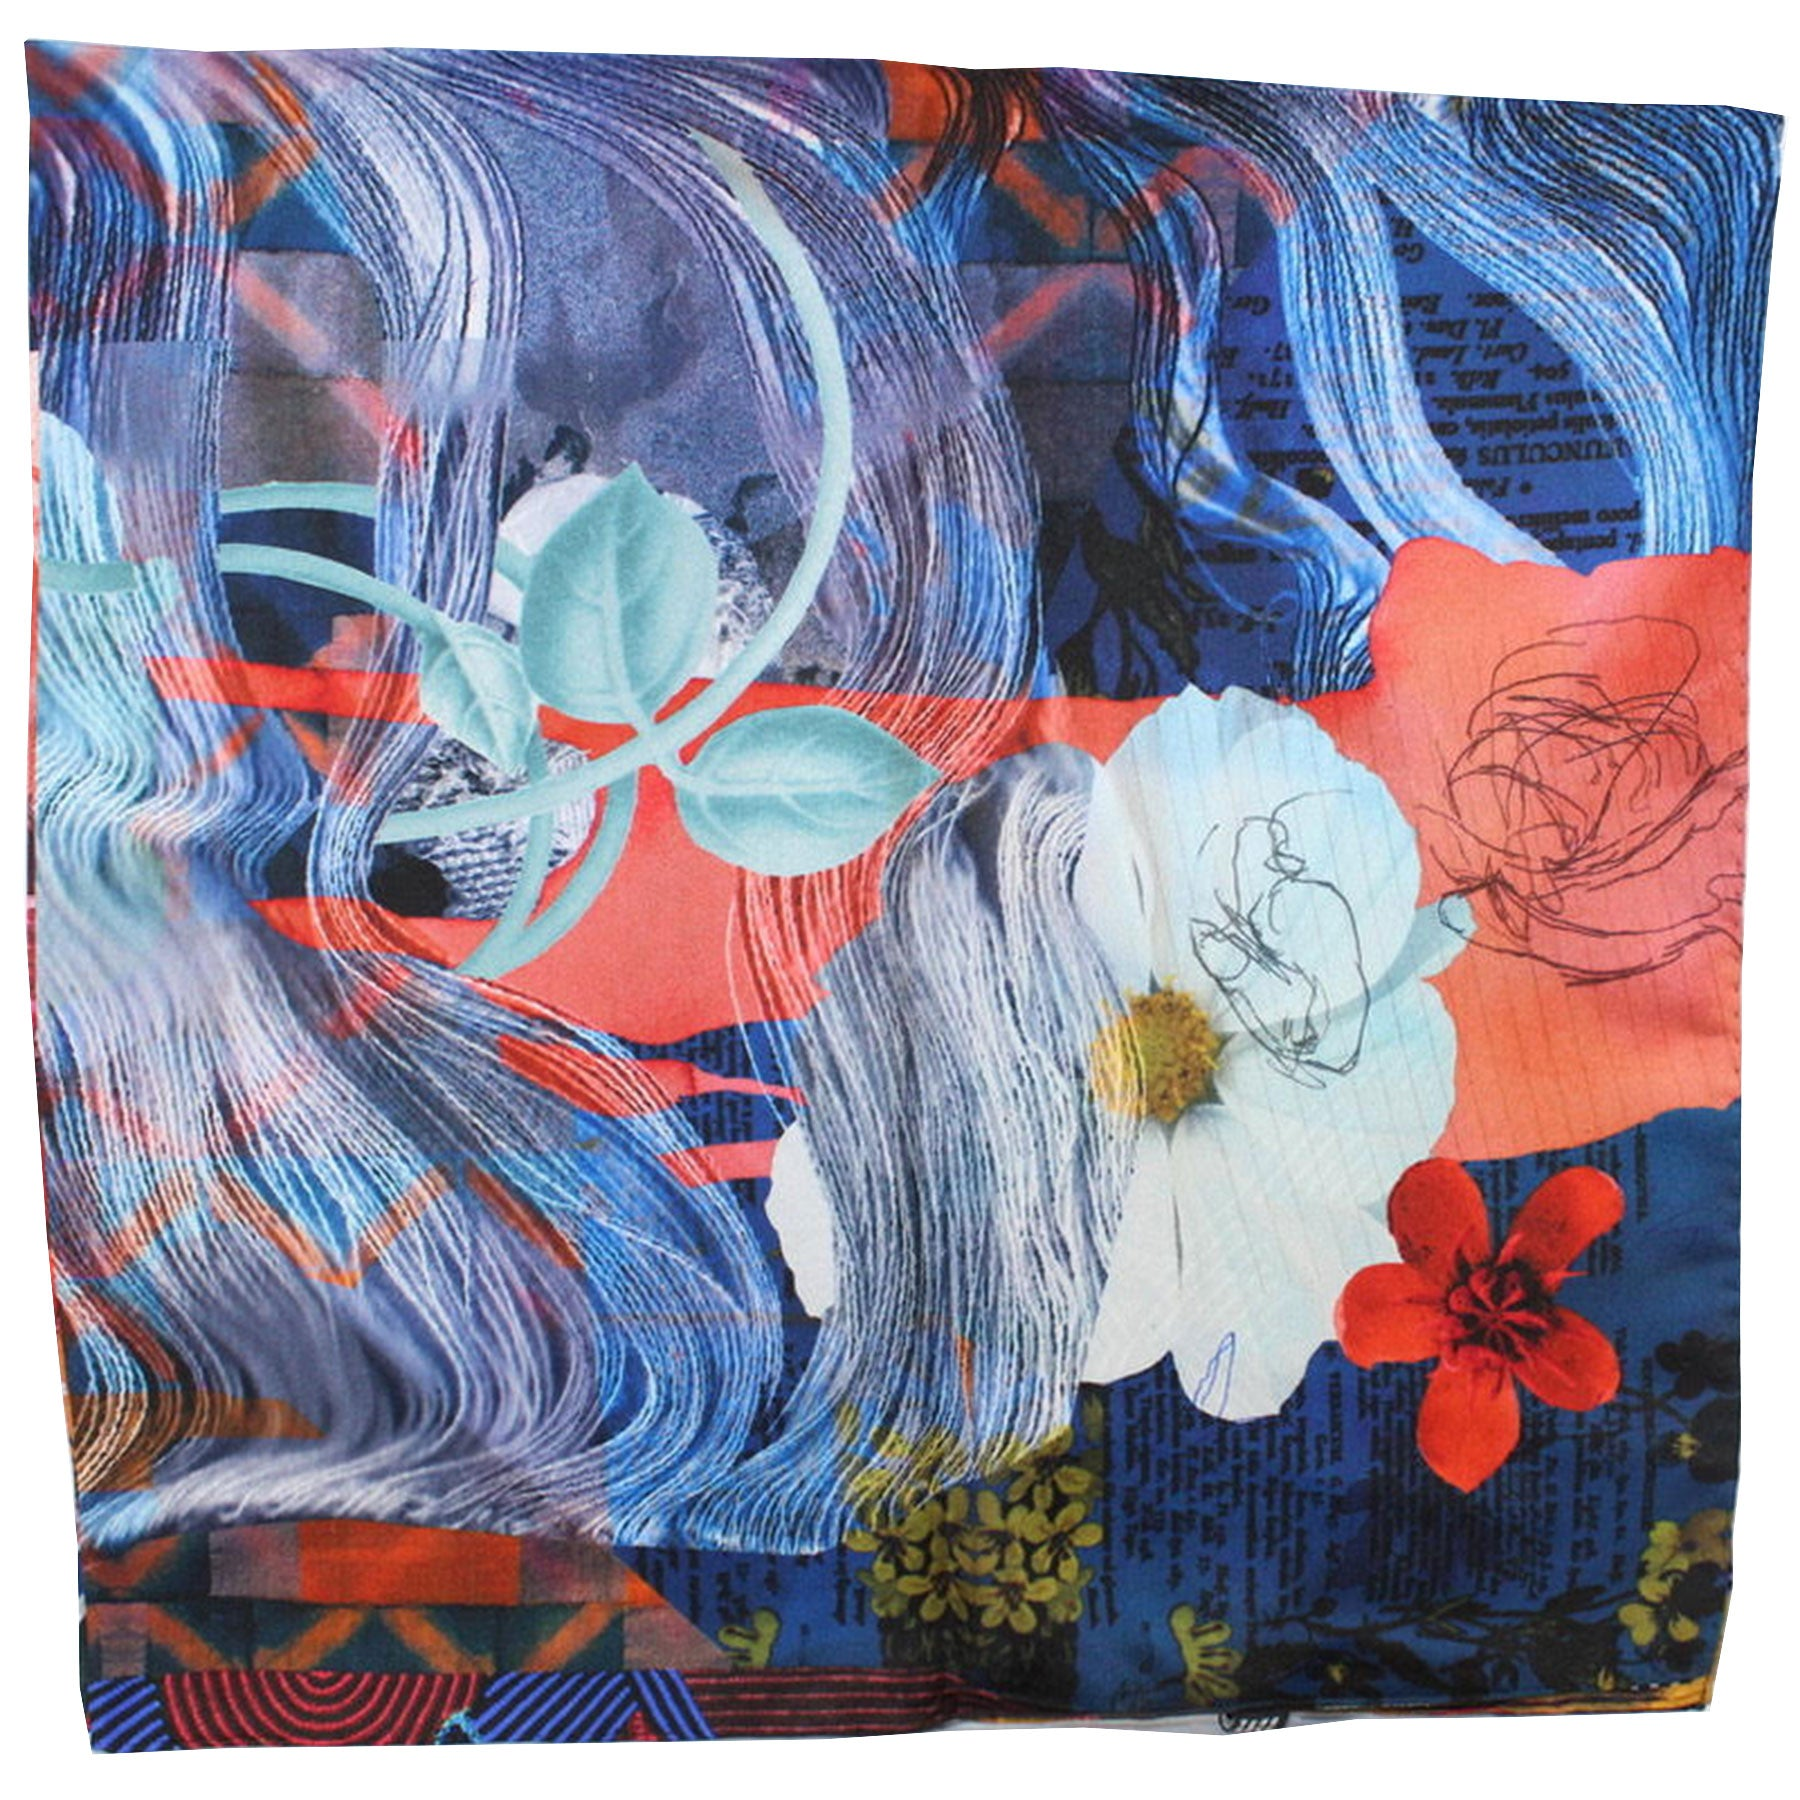 Christian Lacroix Scarf 20 Ans Design Multi Color Floral - Large Twill Silk Square Scarf